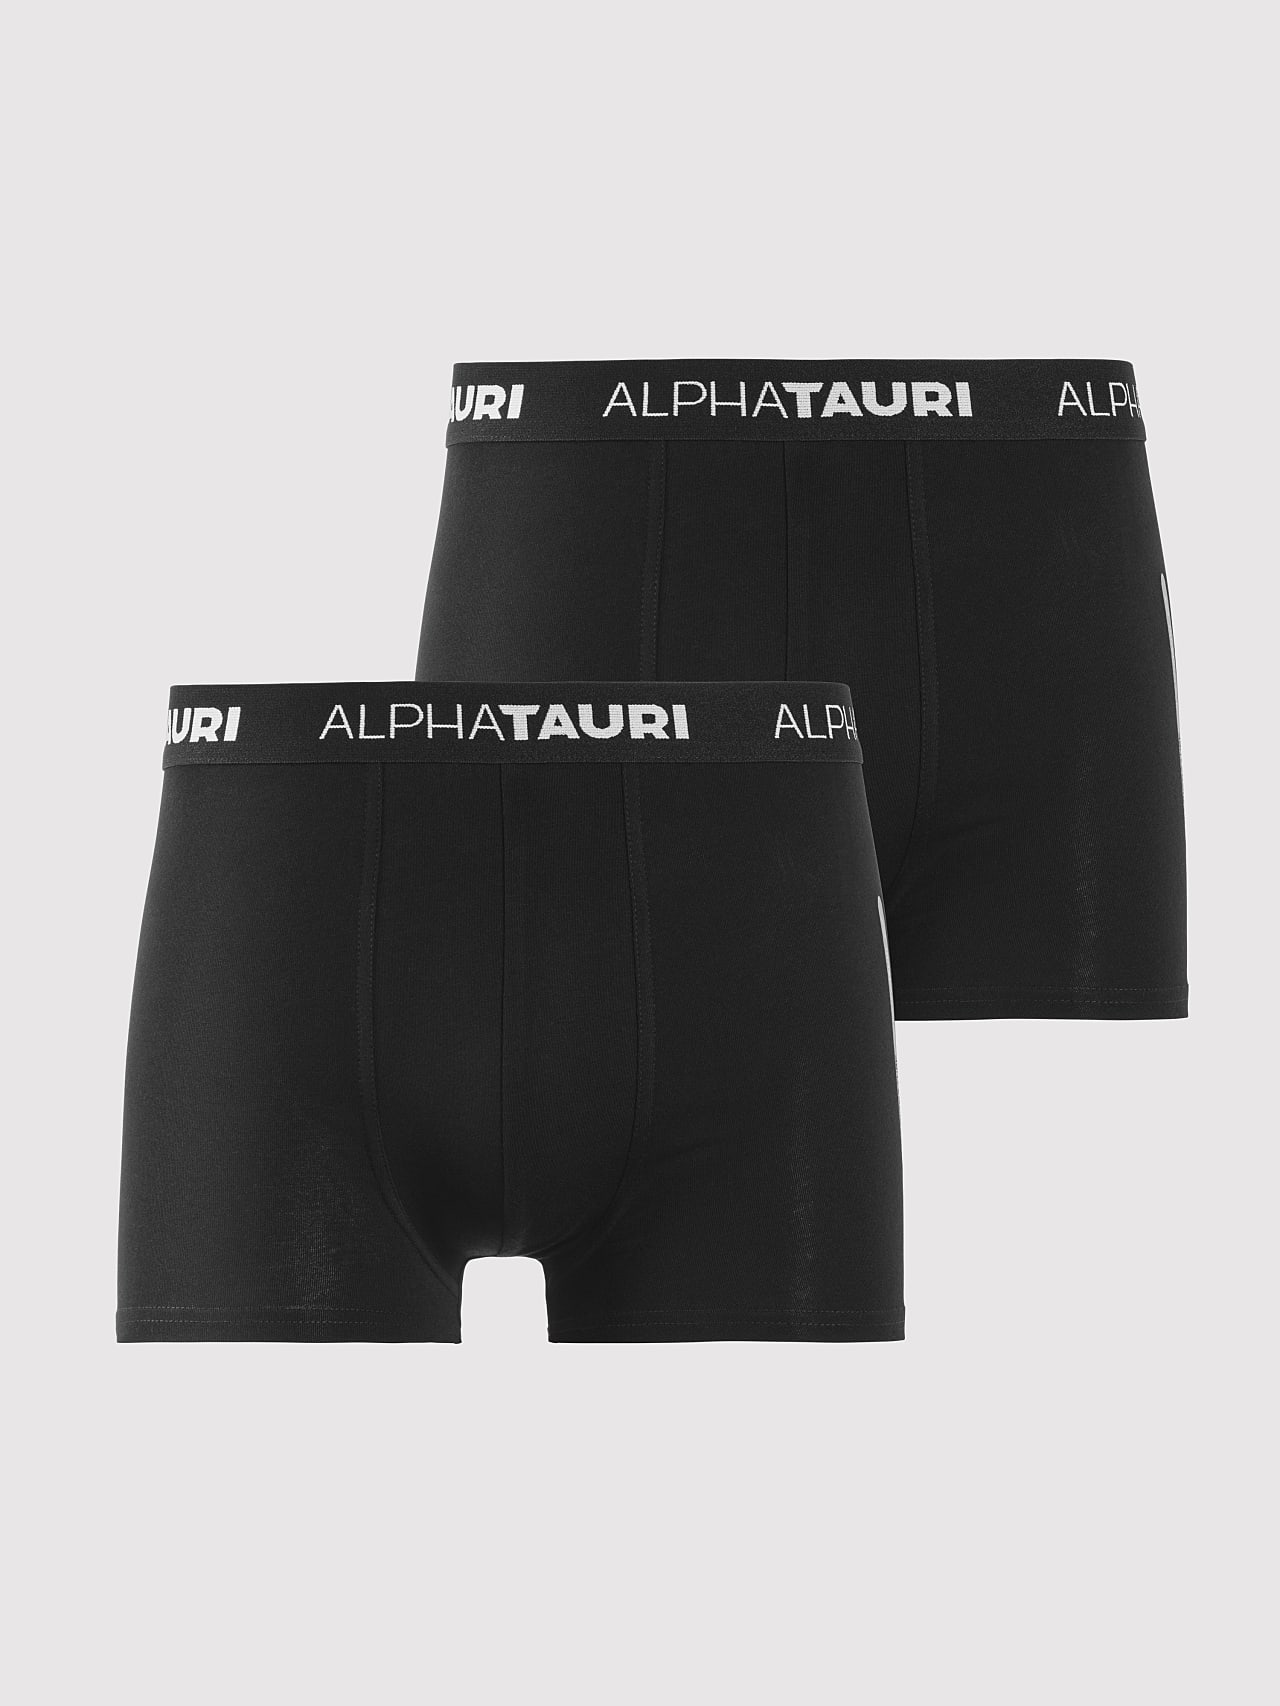 ATOXO V2.Y4.02 Boxer Briefs 2 Pack with SILVERPLUS® black Back Alpha Tauri